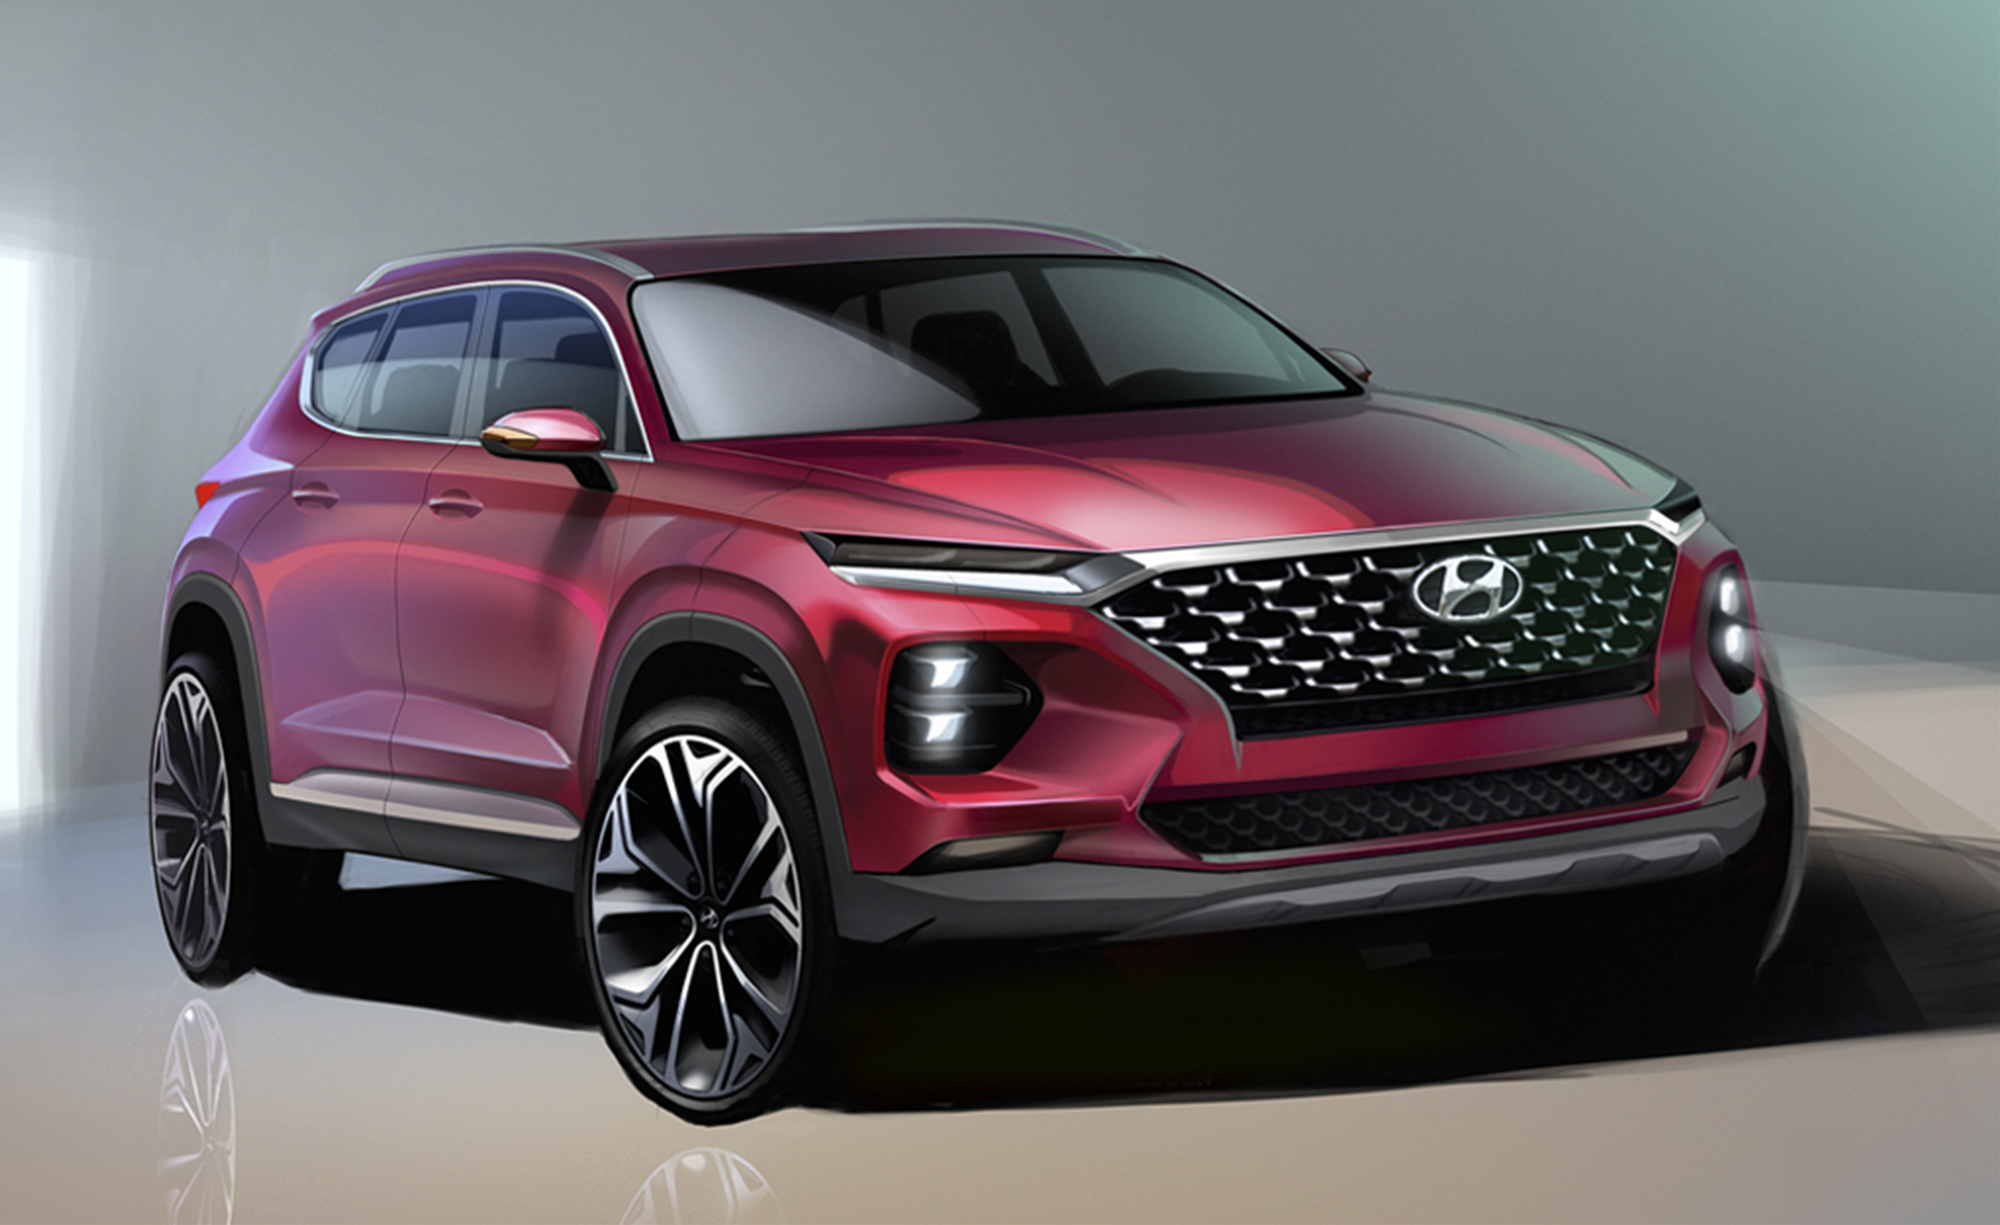 New Lexus Suv >> 2018 Hyundai Santa Fe design revealed, gets Kona treatment | PerformanceDrive